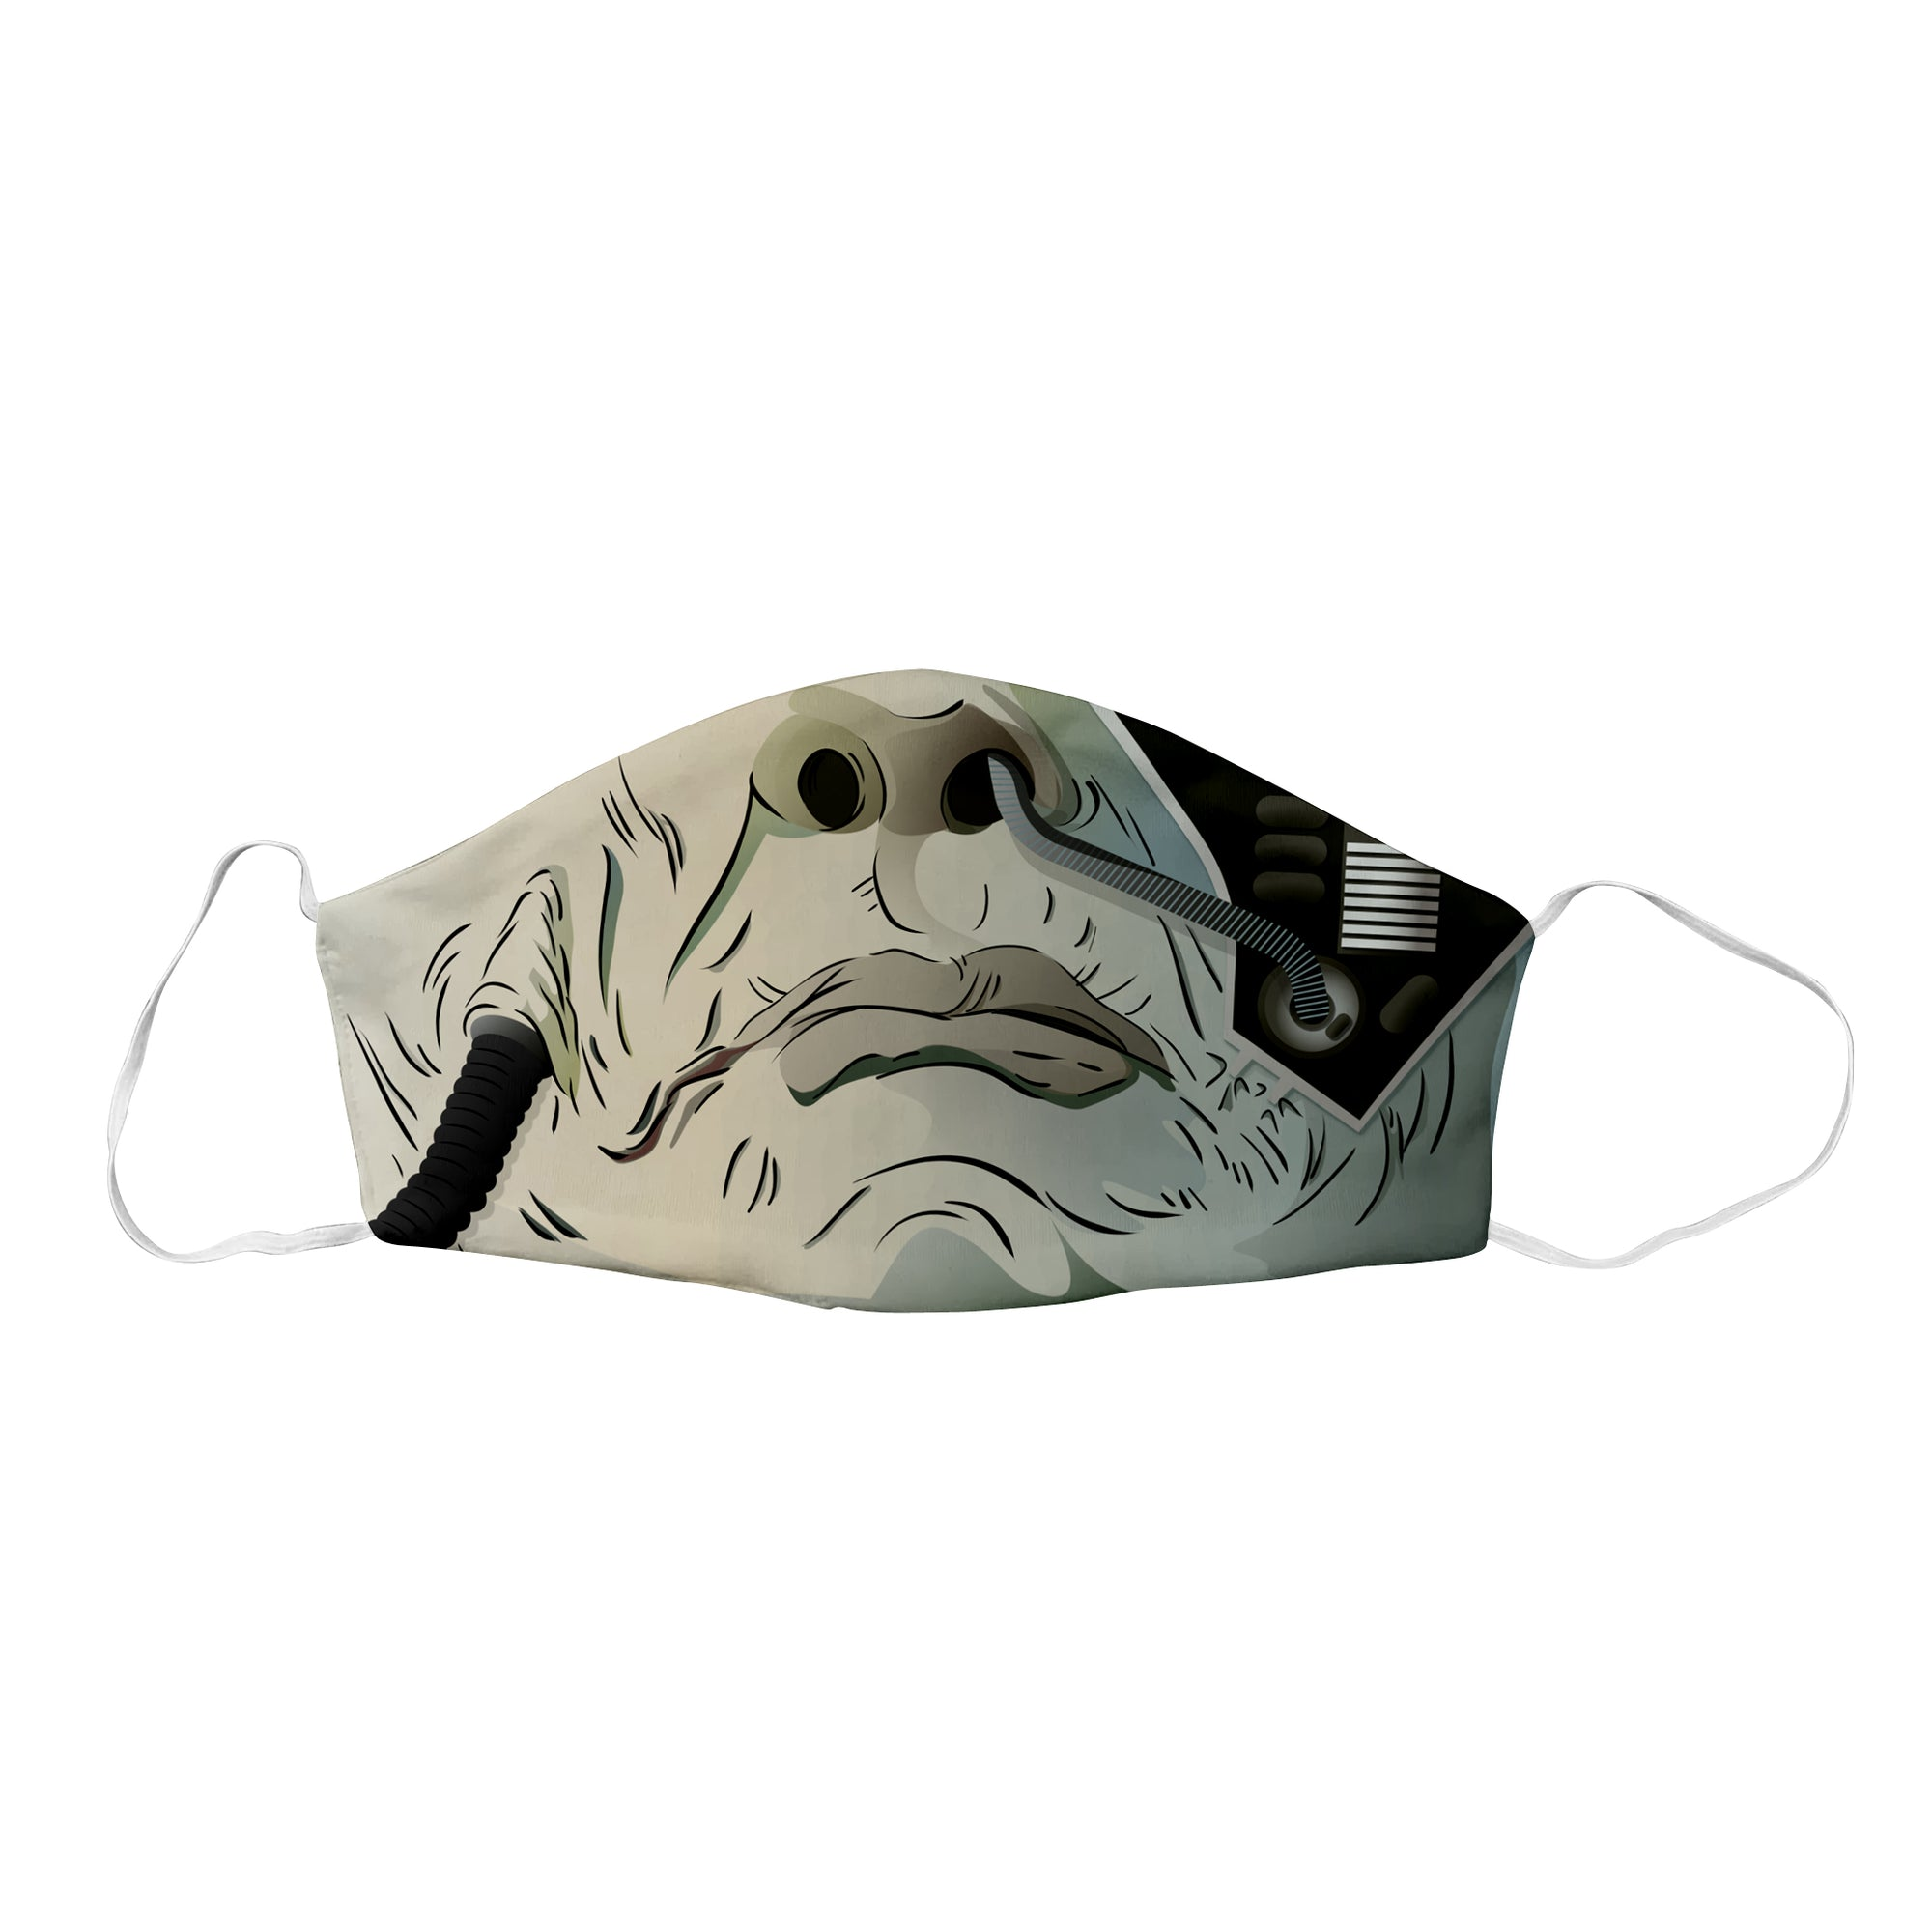 STNG Borg Sci-Fi Face Mask